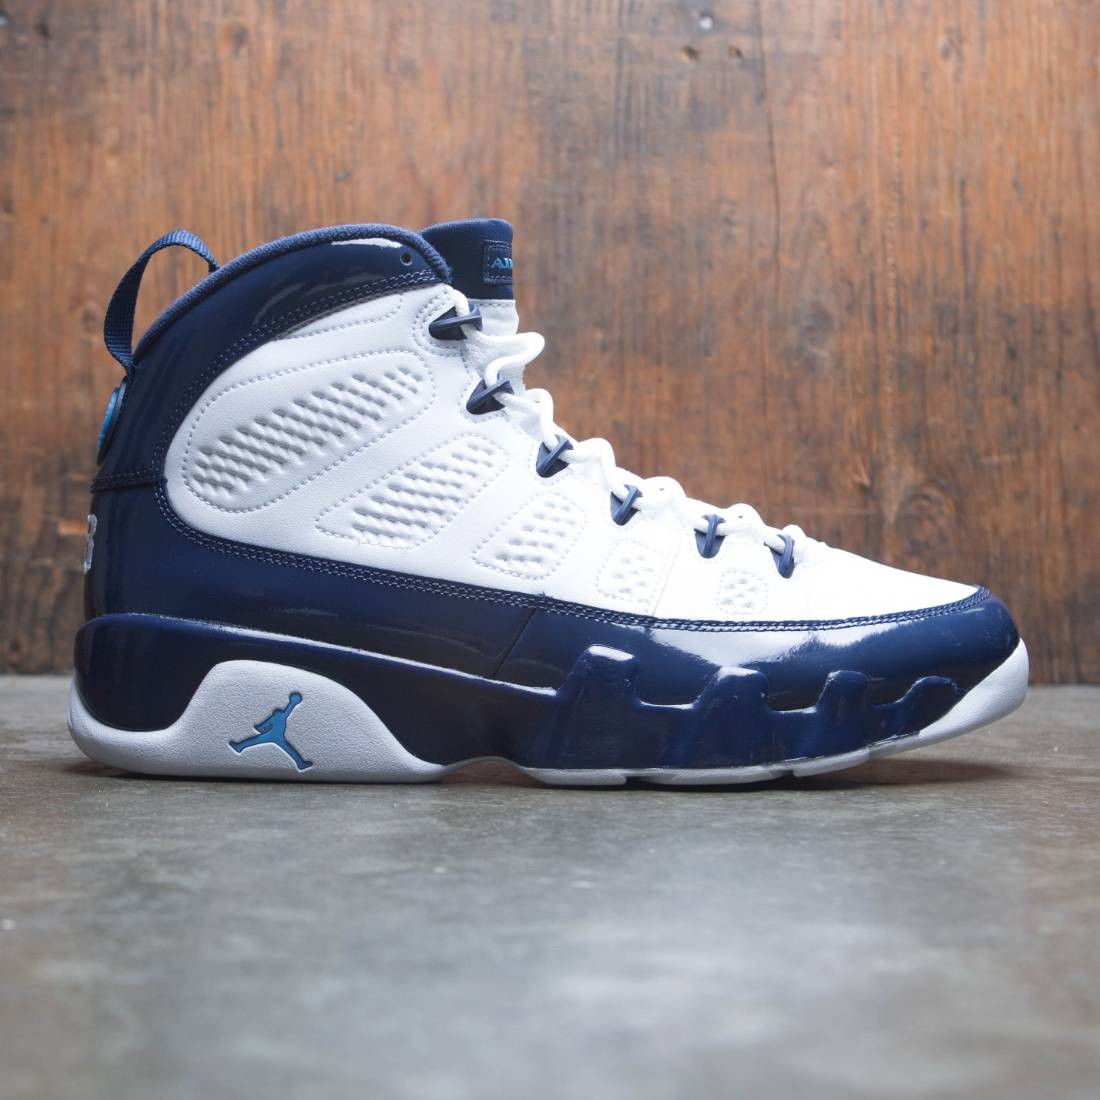 huge discount 211c4 ec681 jordan men air jordan 9 retro white university blue midnight navy